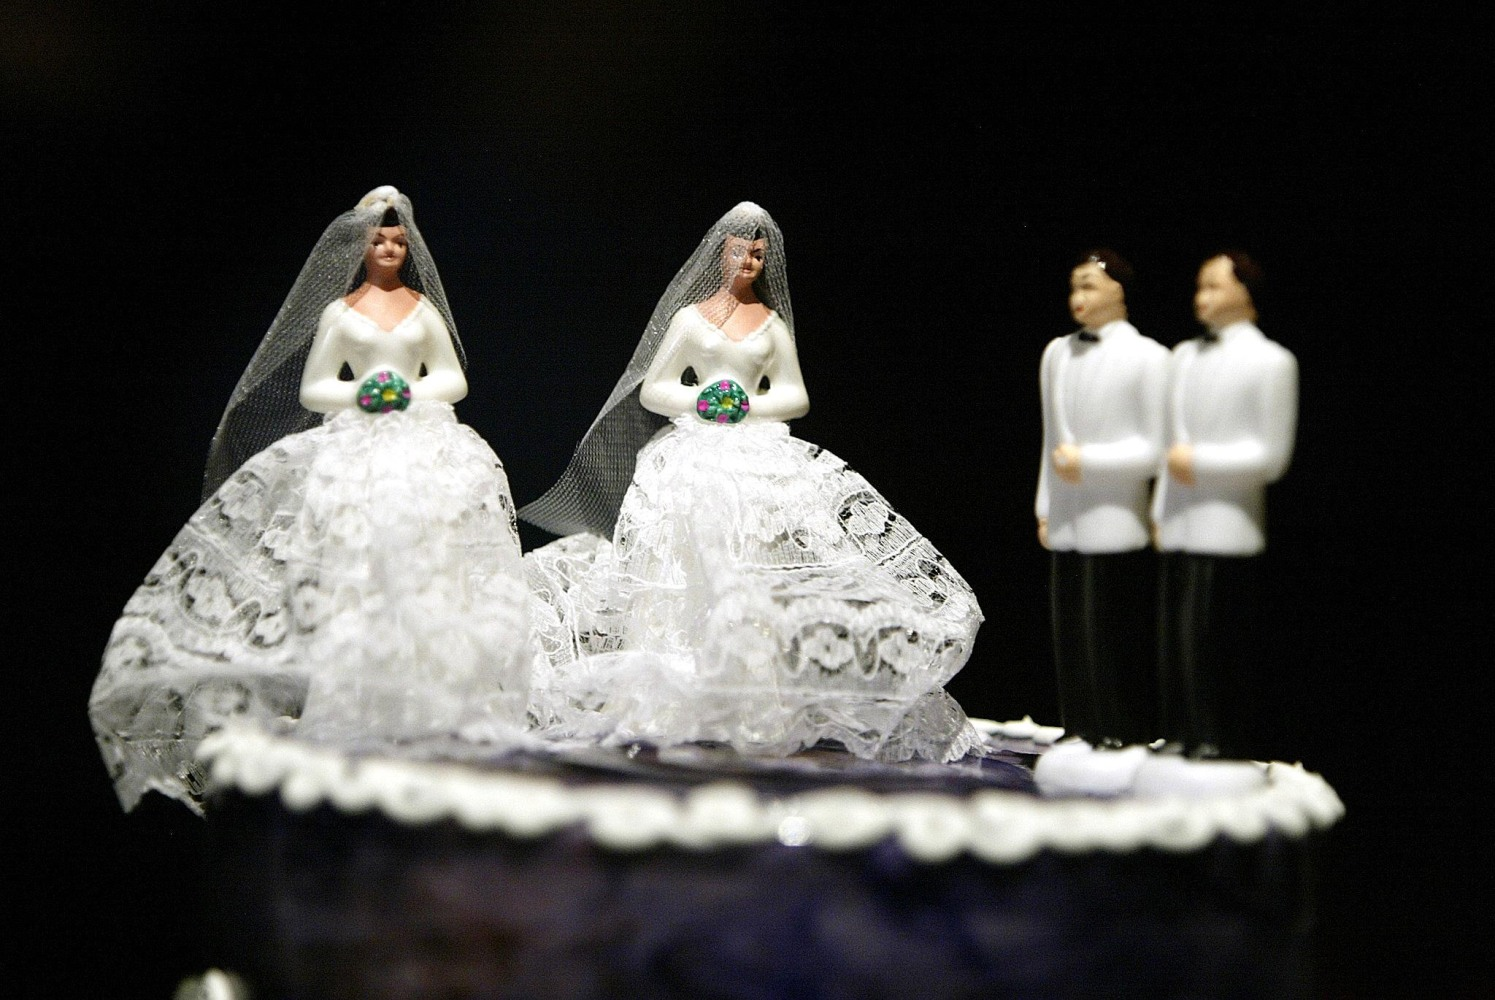 Wedding Cake Ideas For Gay Wedding : Religious Beliefs, Gay Rights Clash in Colorado Court Case ...